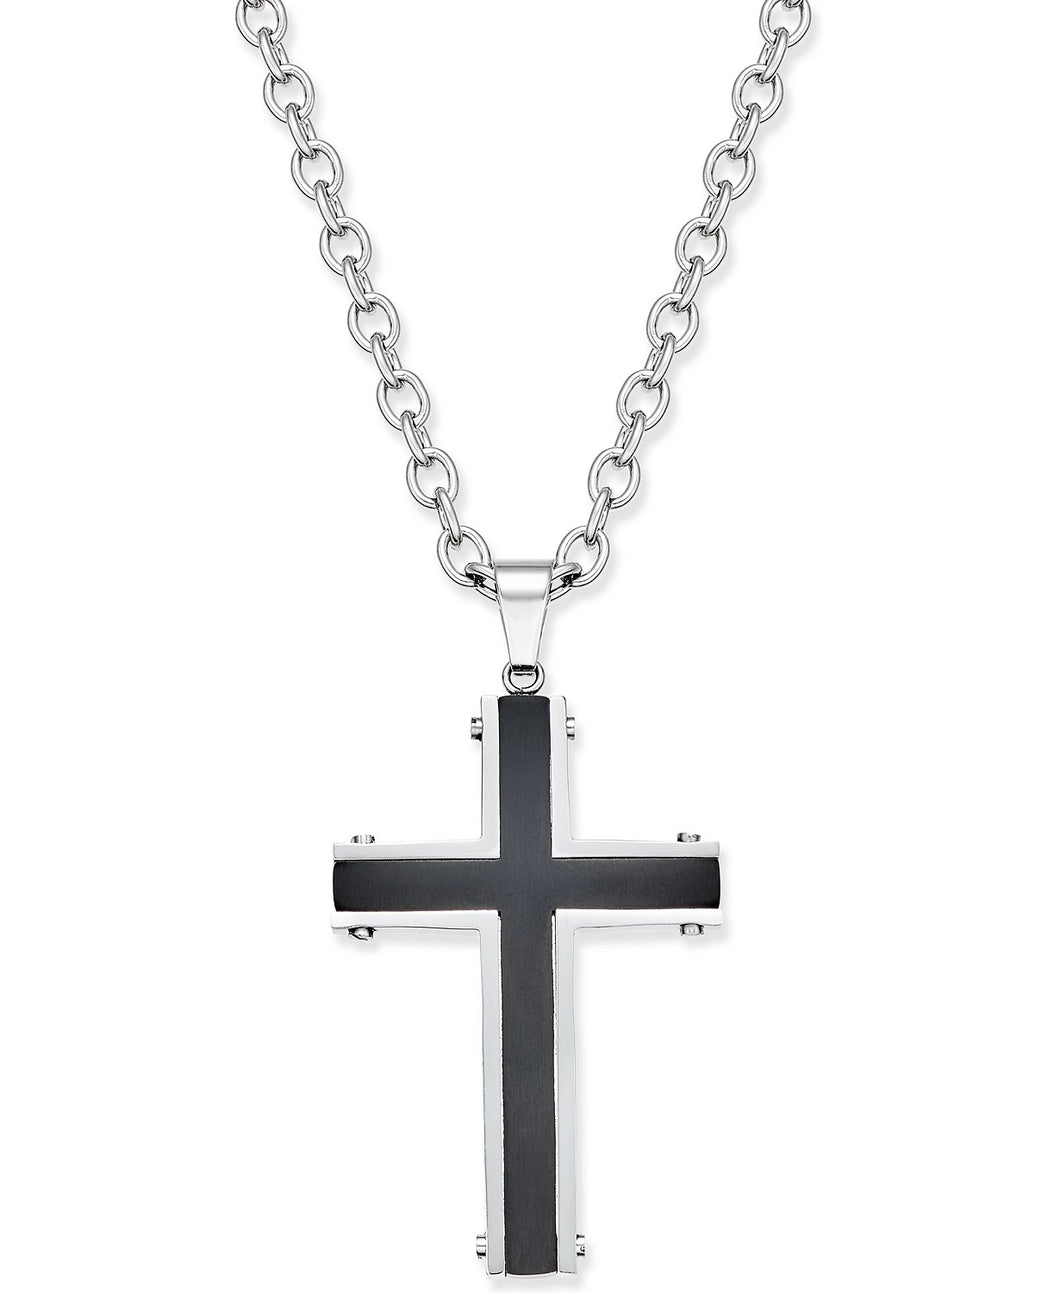 Men's Two-Tone Stainless Steel Cross Pendant Necklace